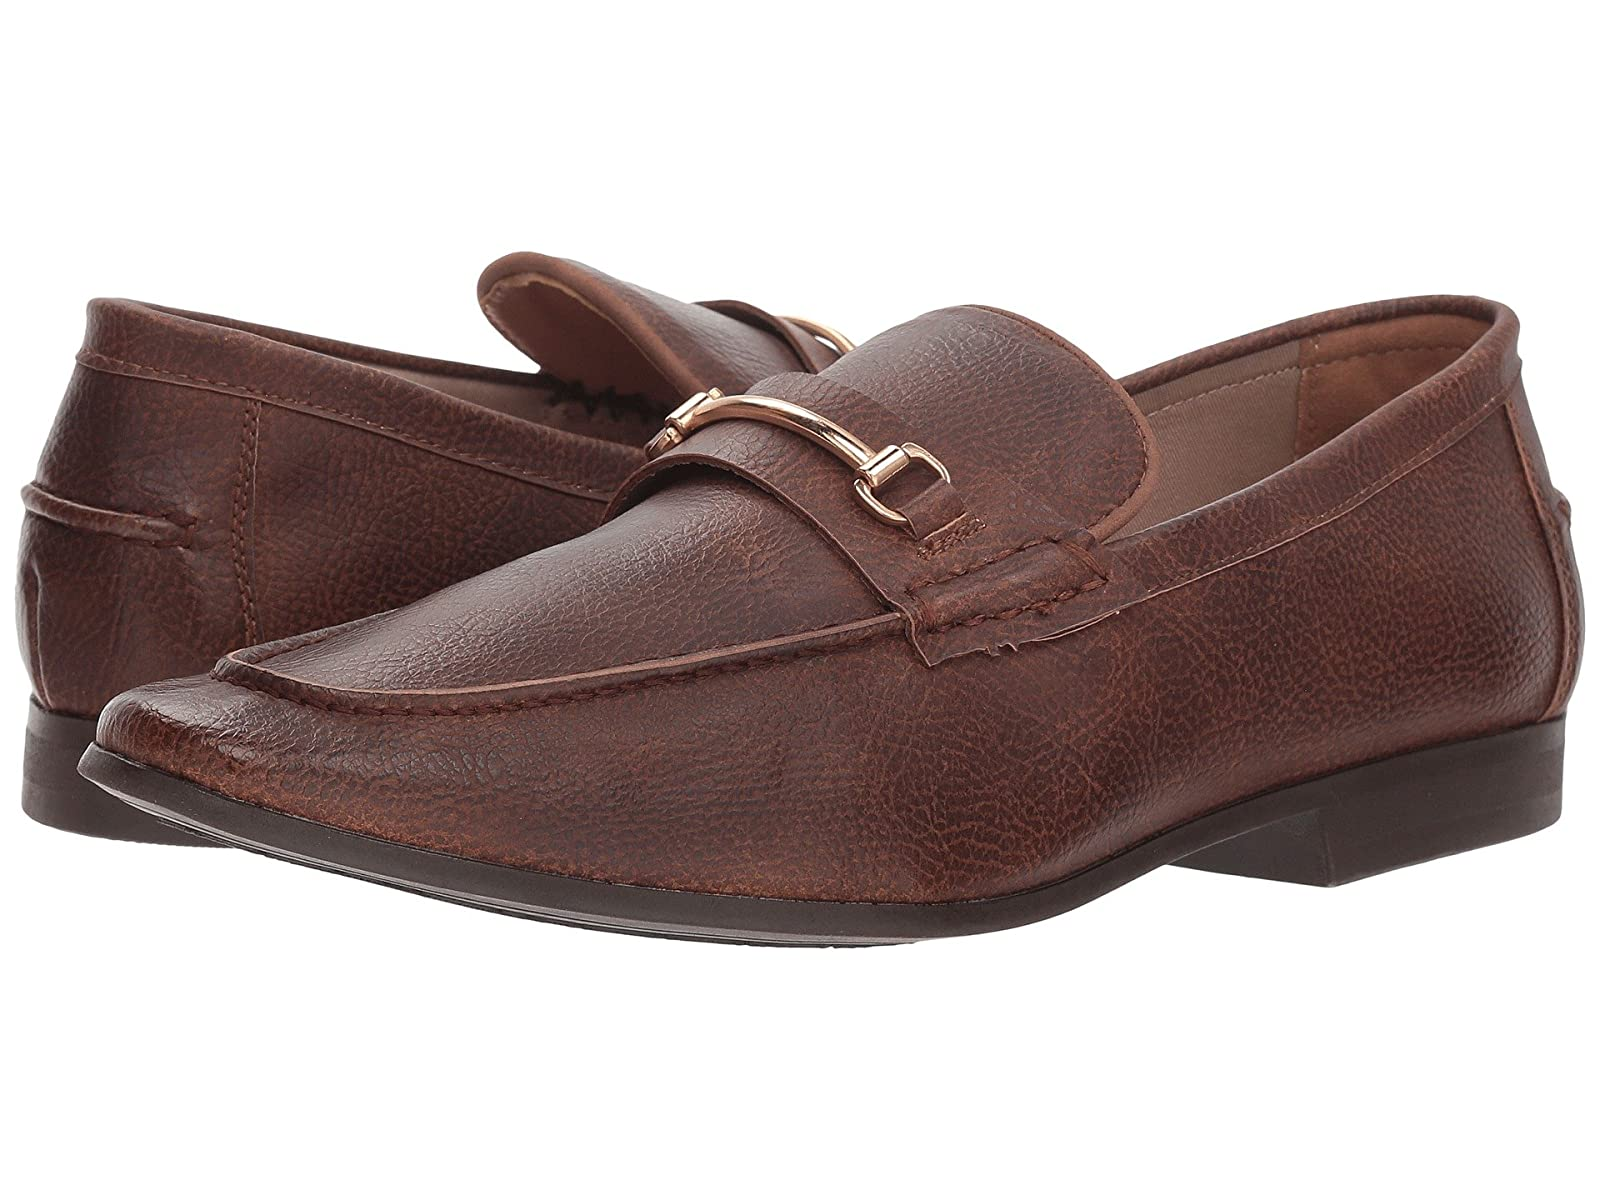 Steve Madden Oscar 6Cheap and distinctive eye-catching shoes